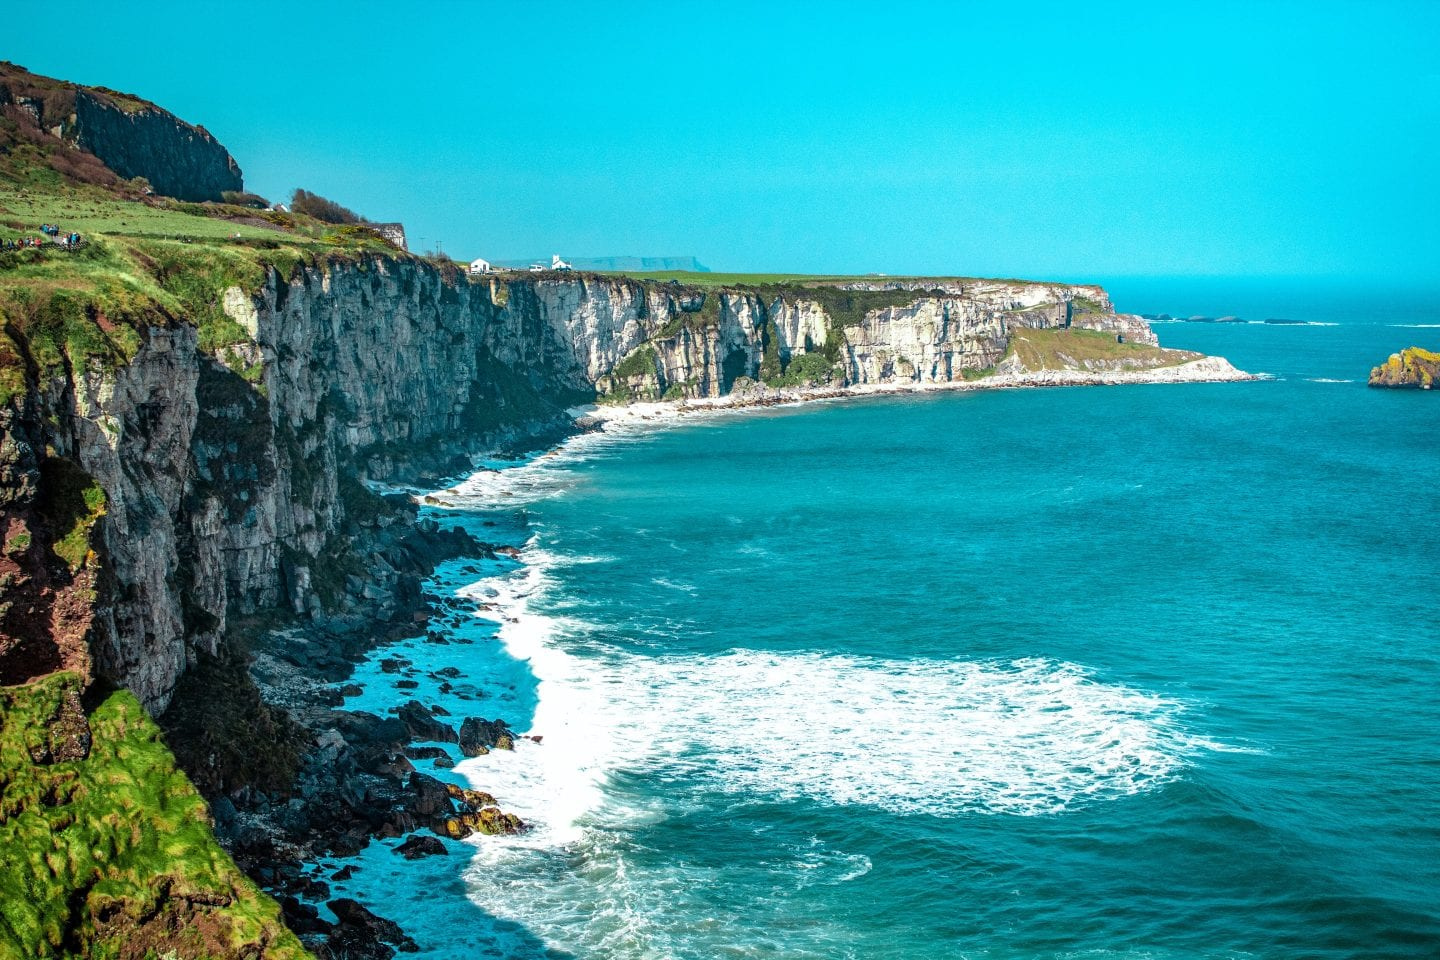 How Much Does a 7 Day Trip to Ireland Cost?